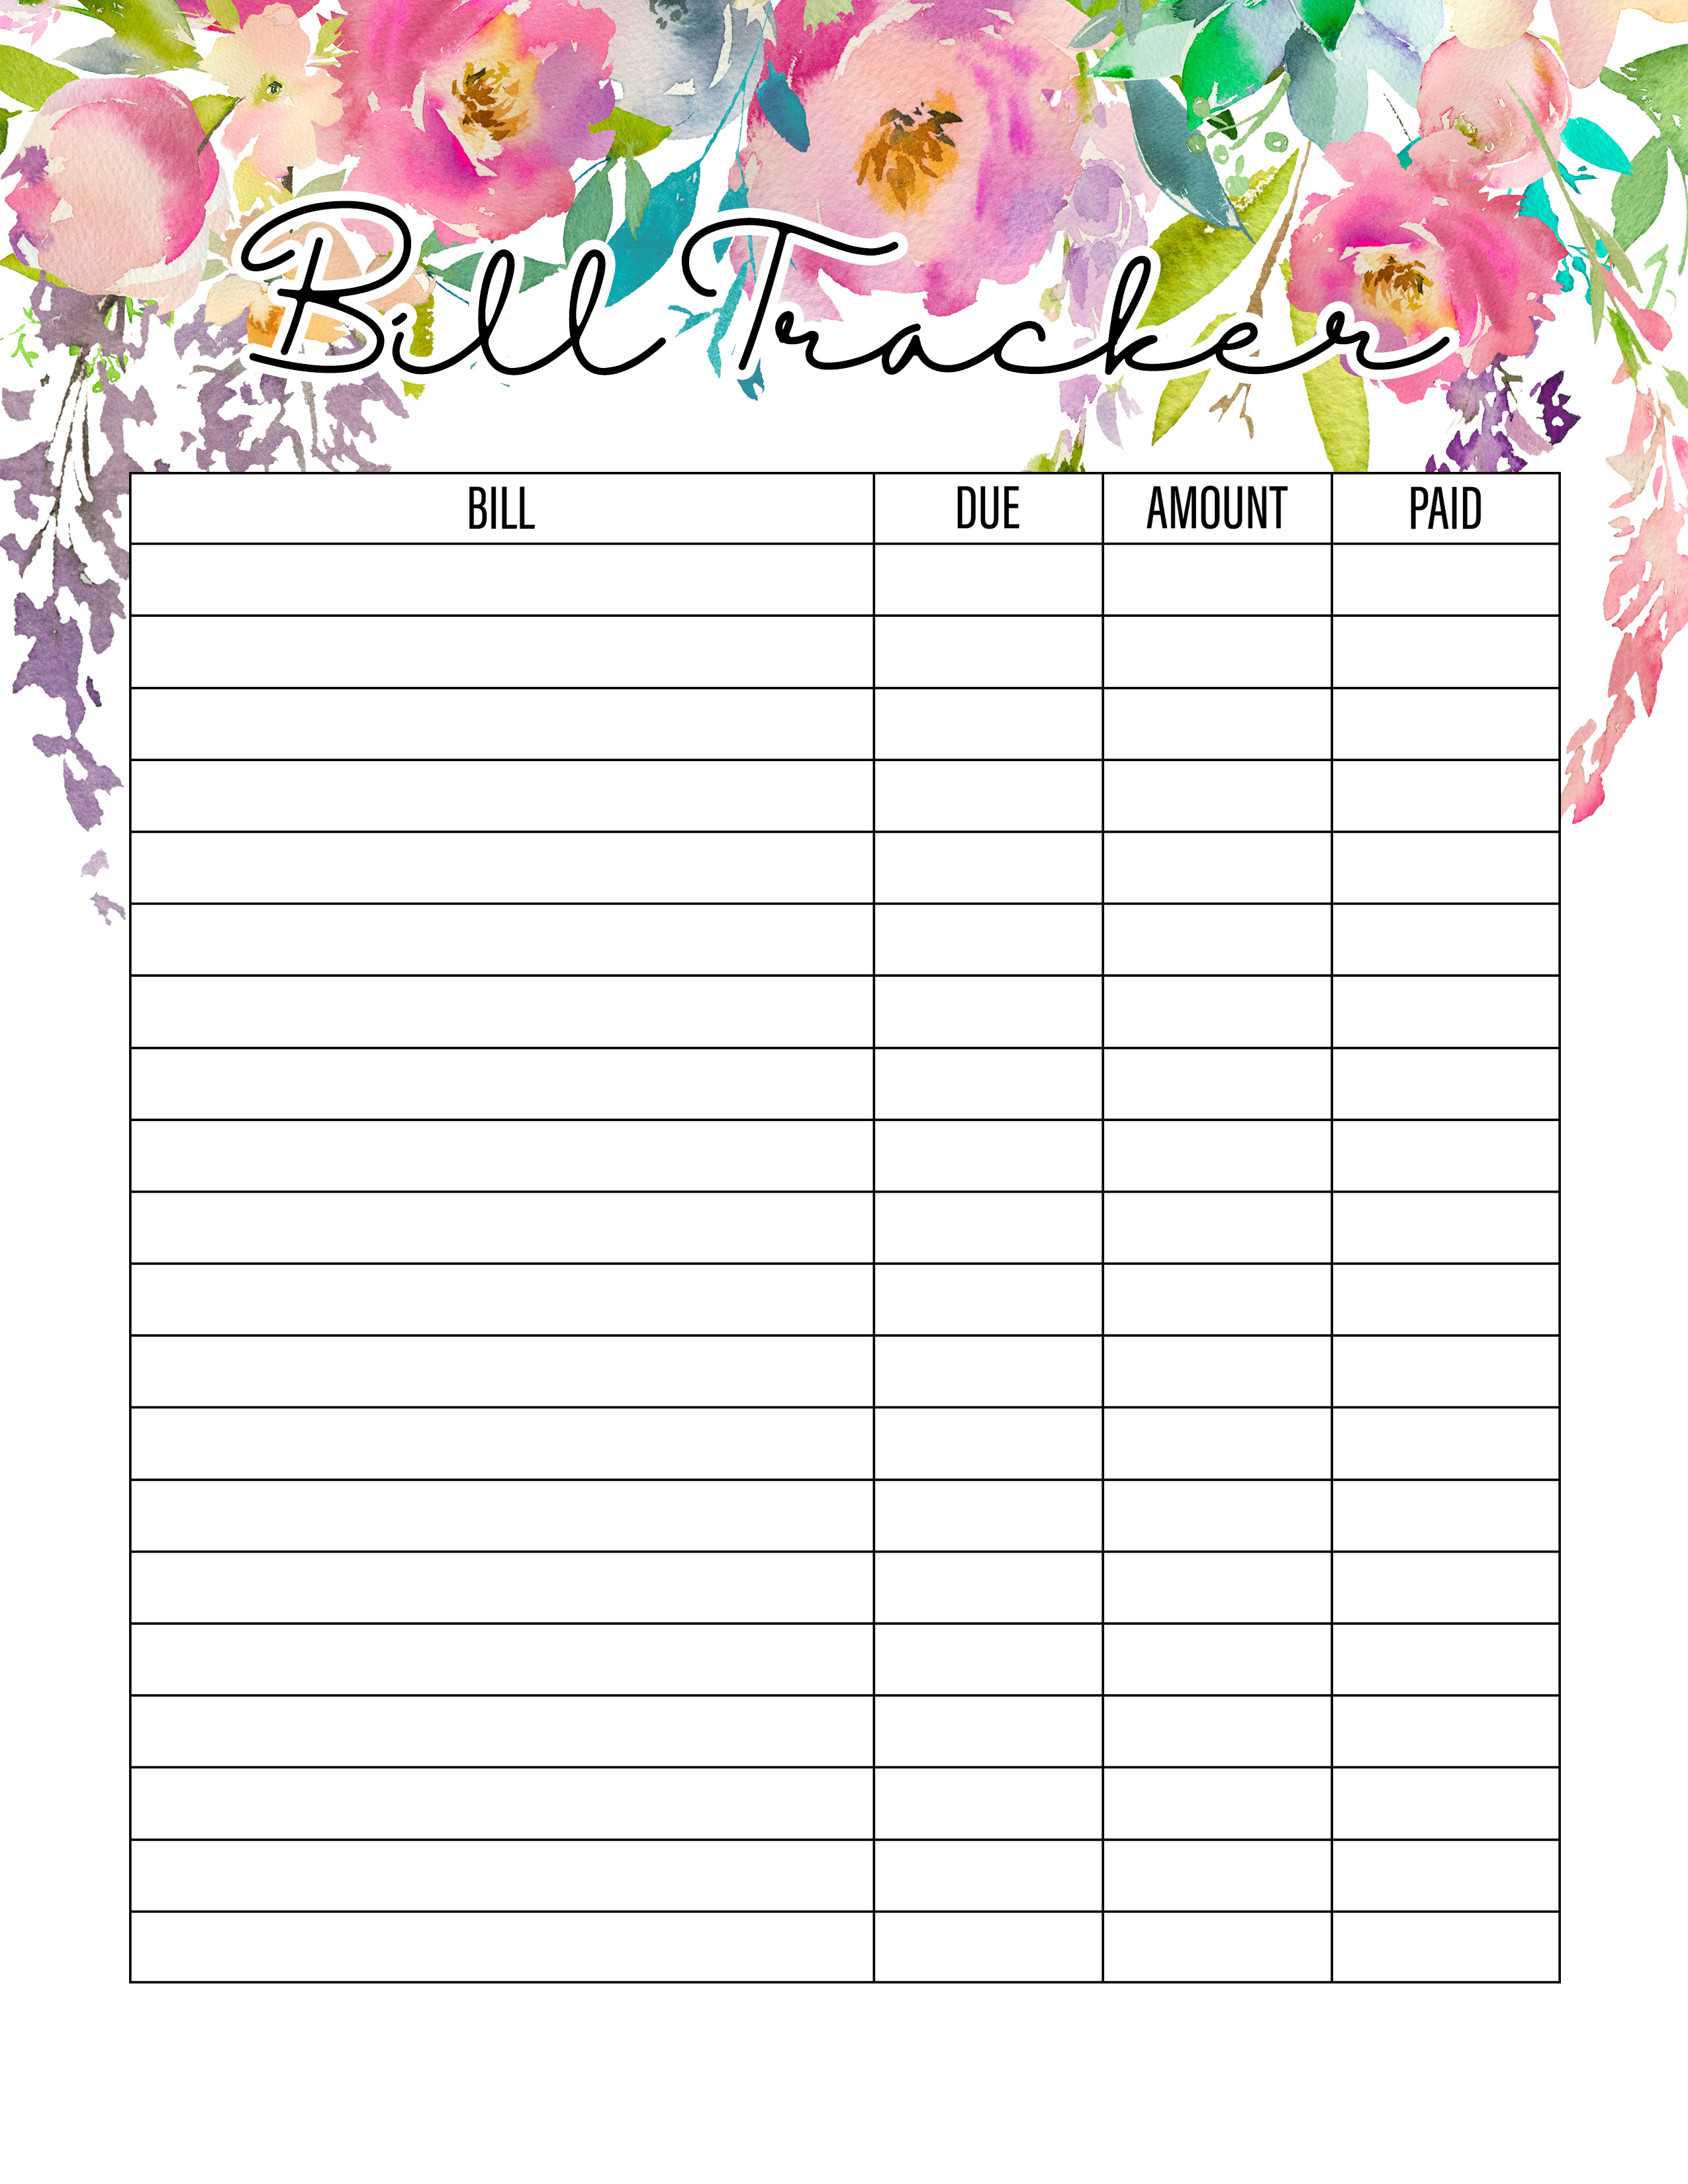 photograph about Bill Tracker Printable named The Excellent 2019 Absolutely free Printable Planner in direction of Set up Your Existence